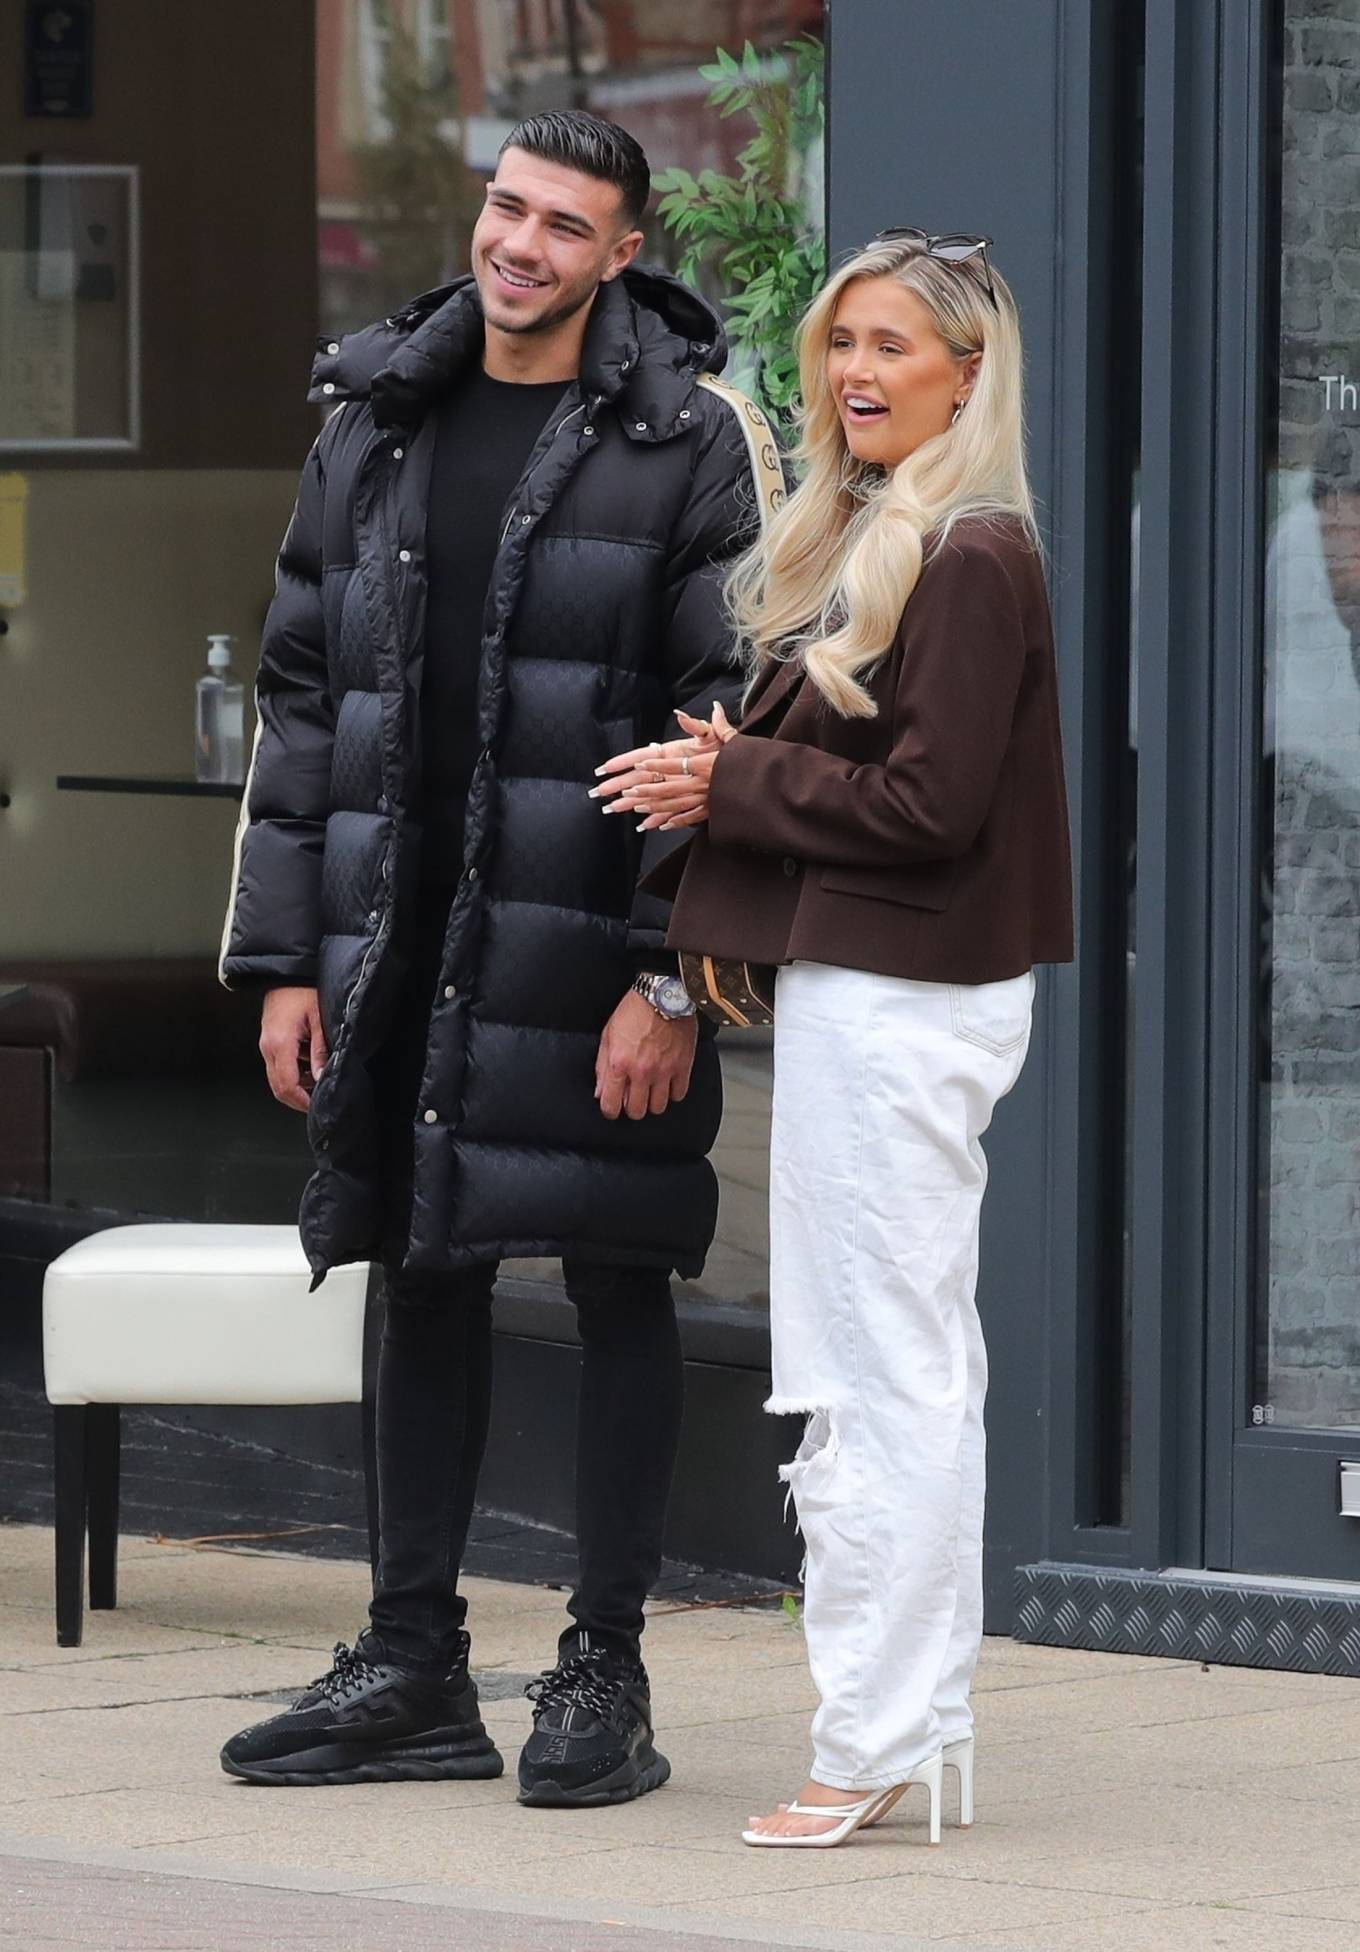 Molly-Mae Hague 2020 : Molly-Mae Hague and Tommy Fury – Seen while out in Cheshire -13